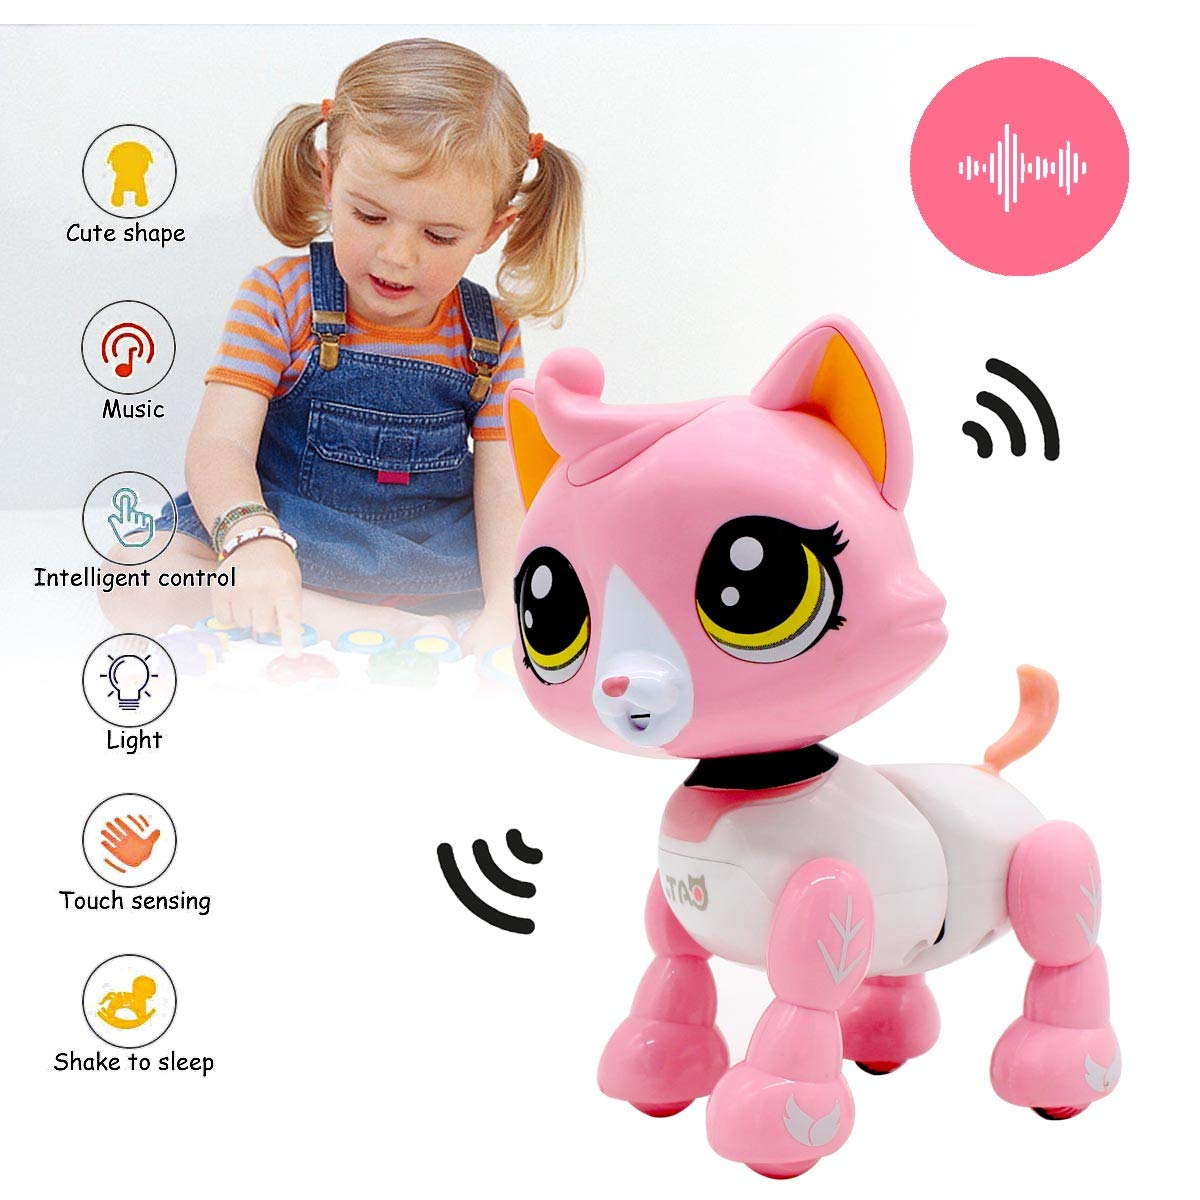 Yehtta Gifts for 3-8 Year Old Girls Robot Cat Toddler Interactive Toy Pet Autism Toys Electronic Toy Catty Kids Gifts Pink